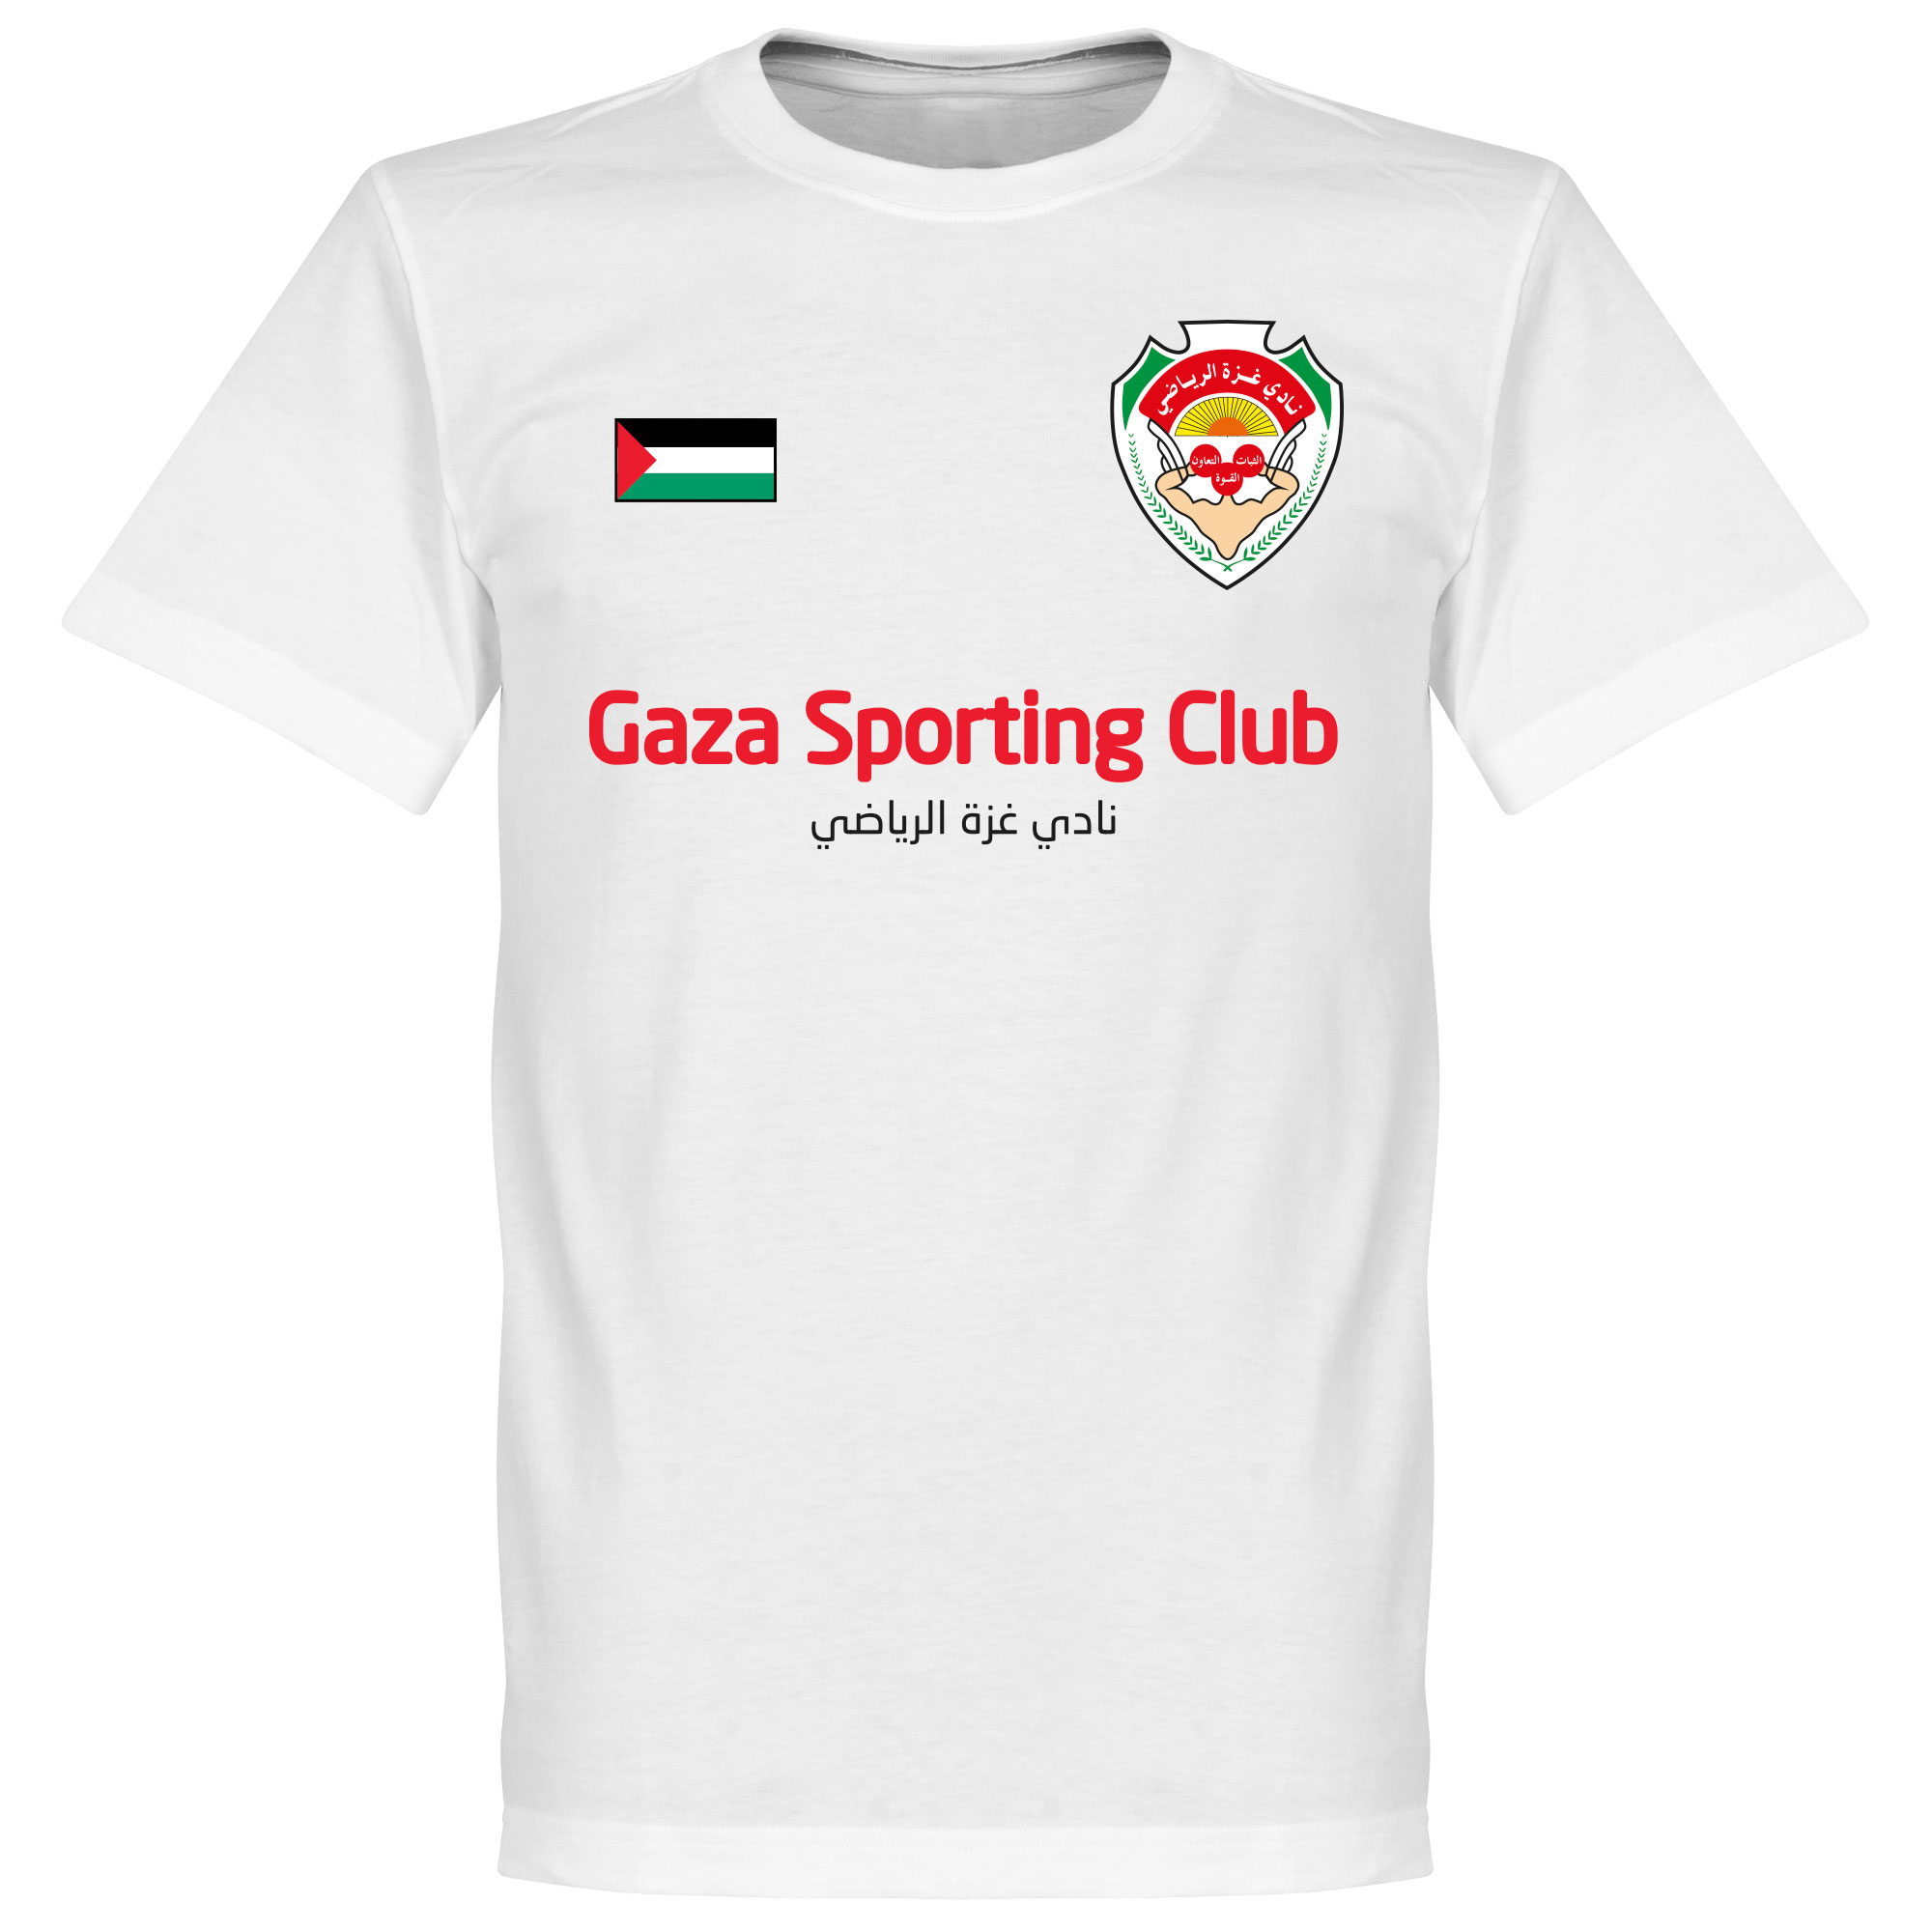 Gaza Sporting Club Football Tee - XXXXXL